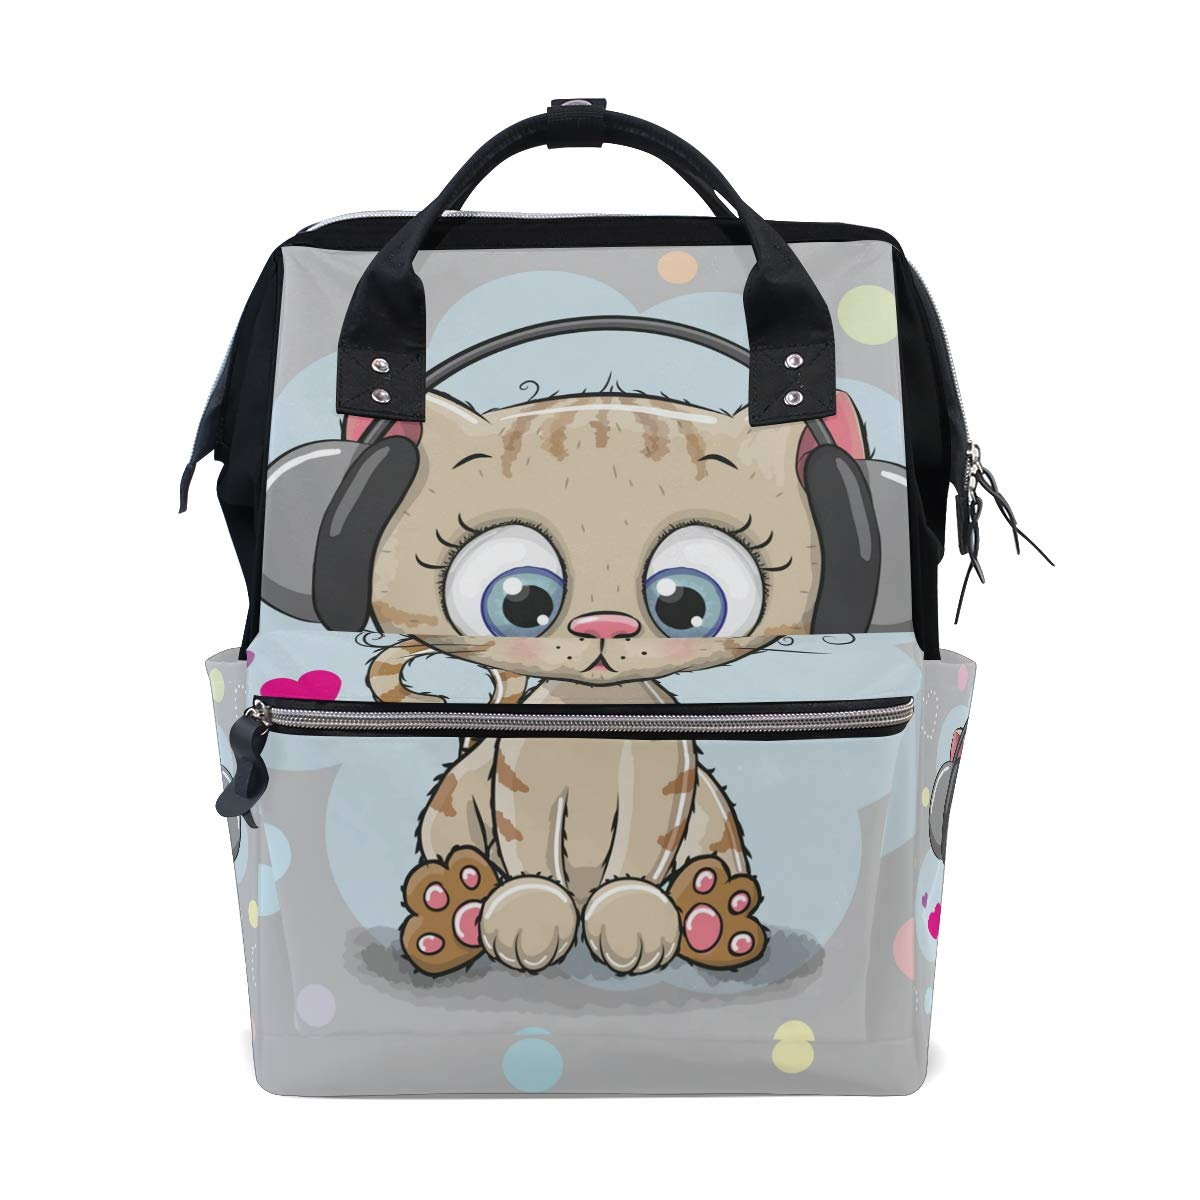 Diaper Bag Backpack Cute Cartoon Kitten Multipurpose Travel Backpack